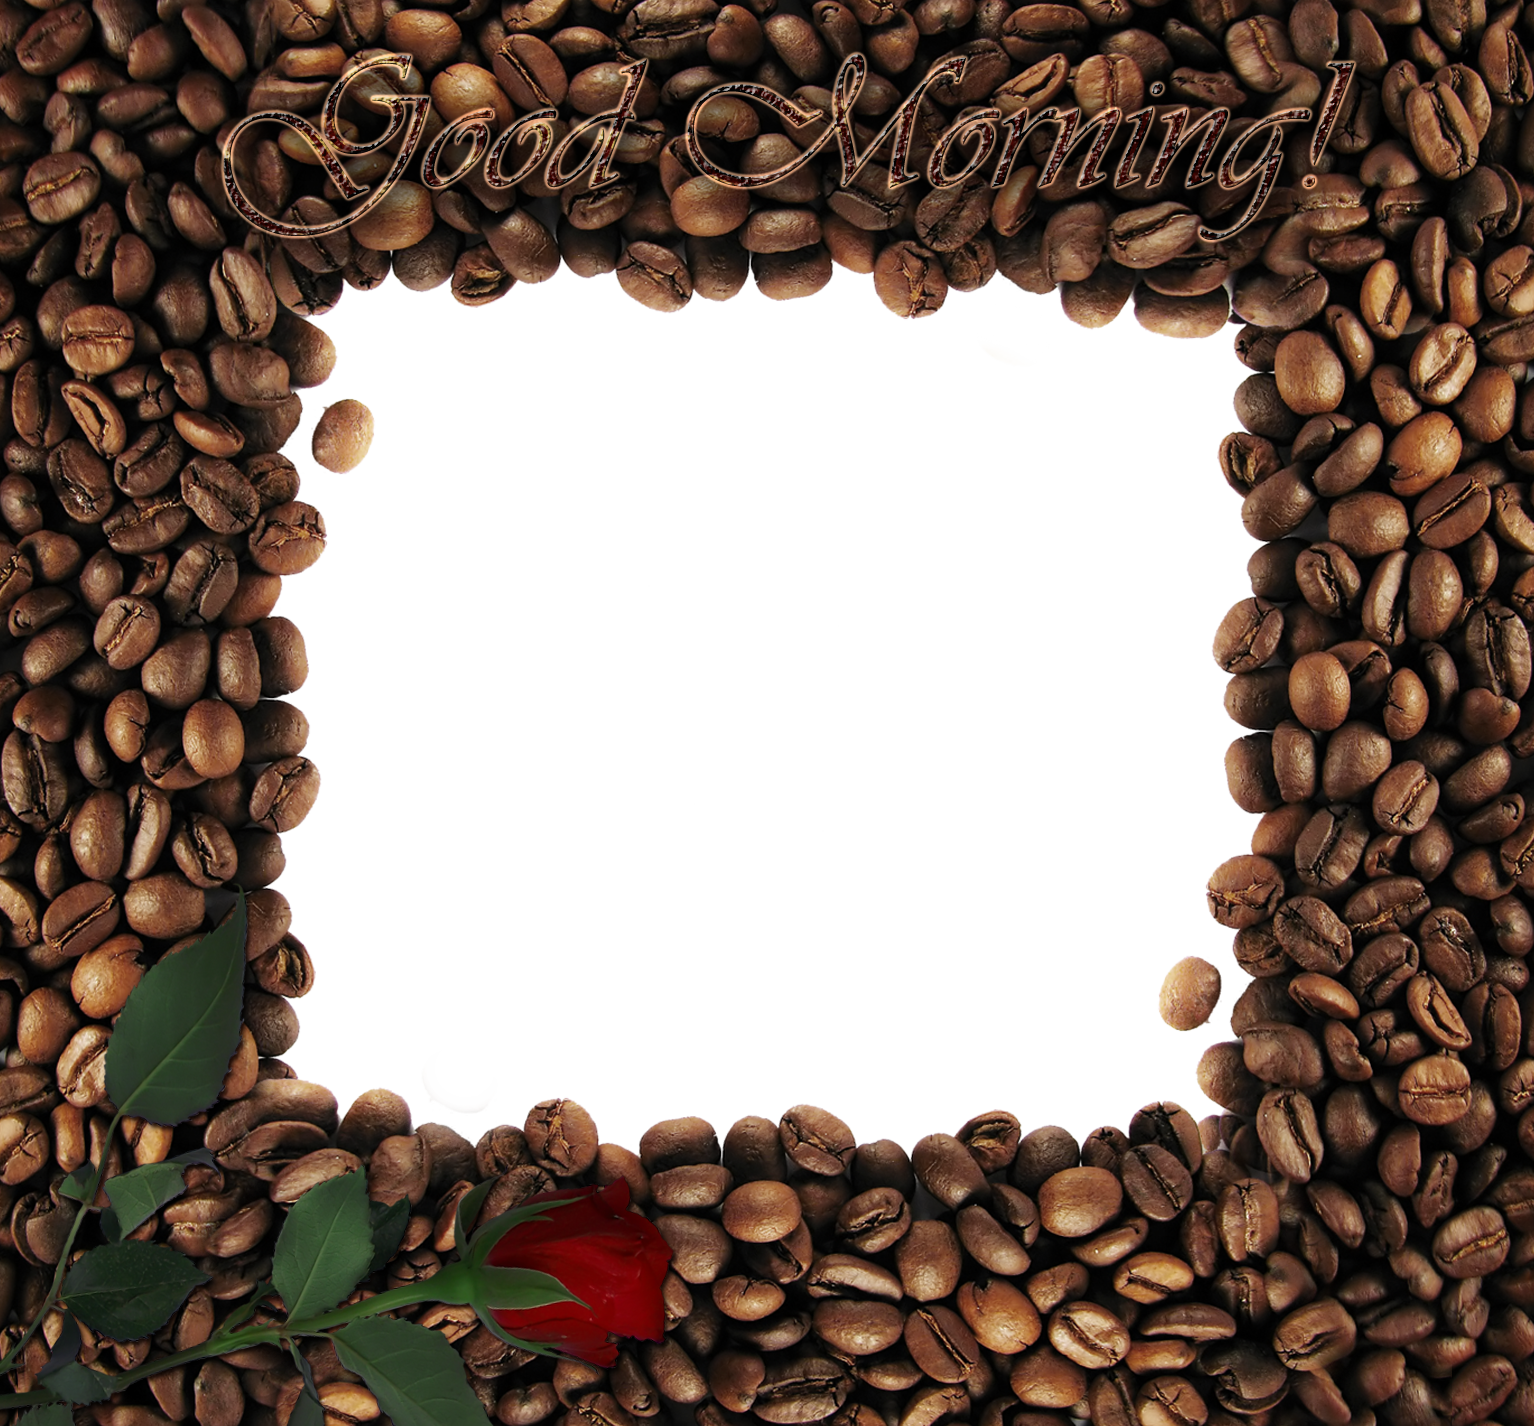 Good morning with rose. Clipart frames coffee